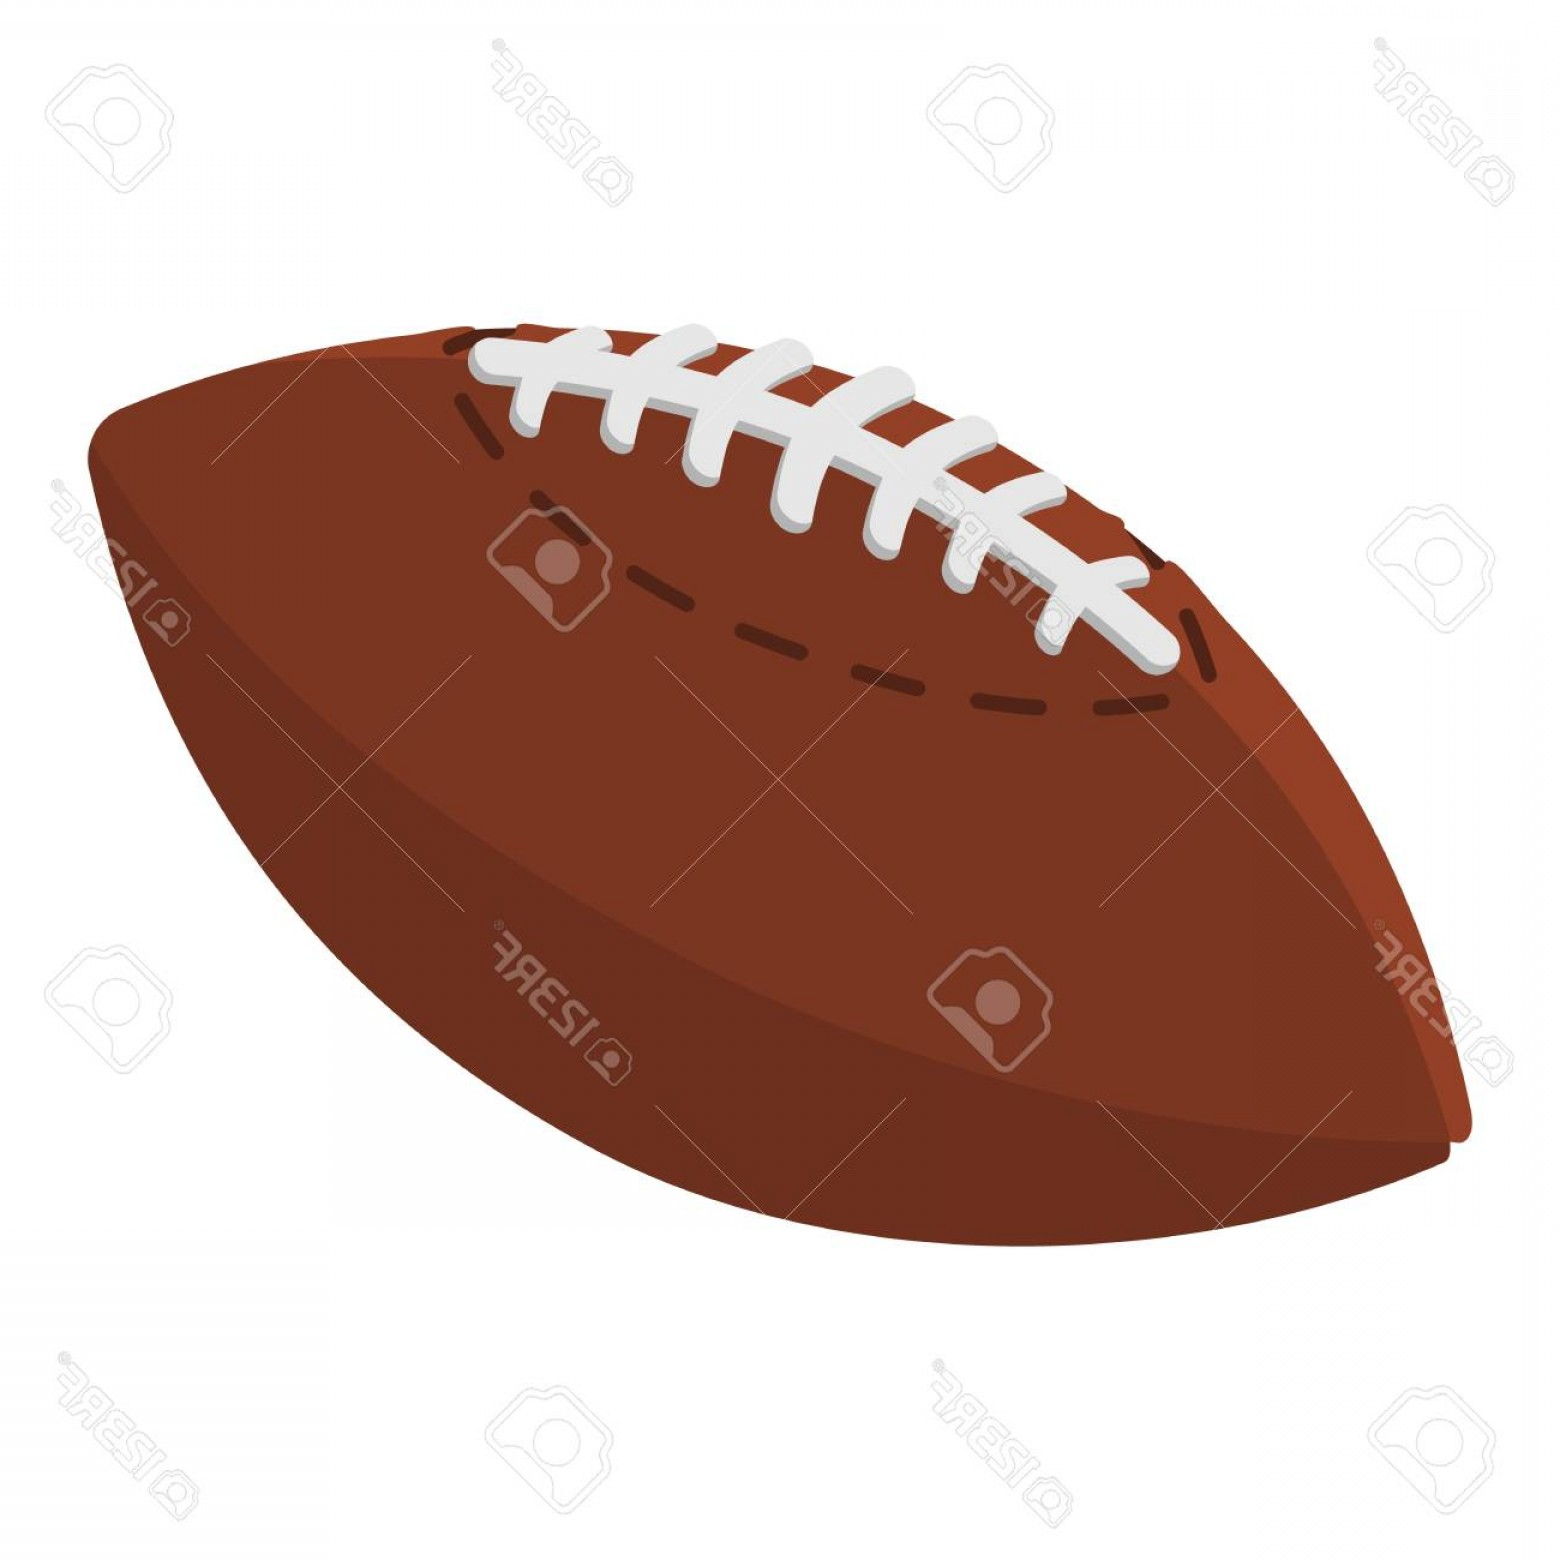 High Res Vector American Football: Photostock Vector American Football Ball Cartoon Illustration Cartoon Symbol On A White Background